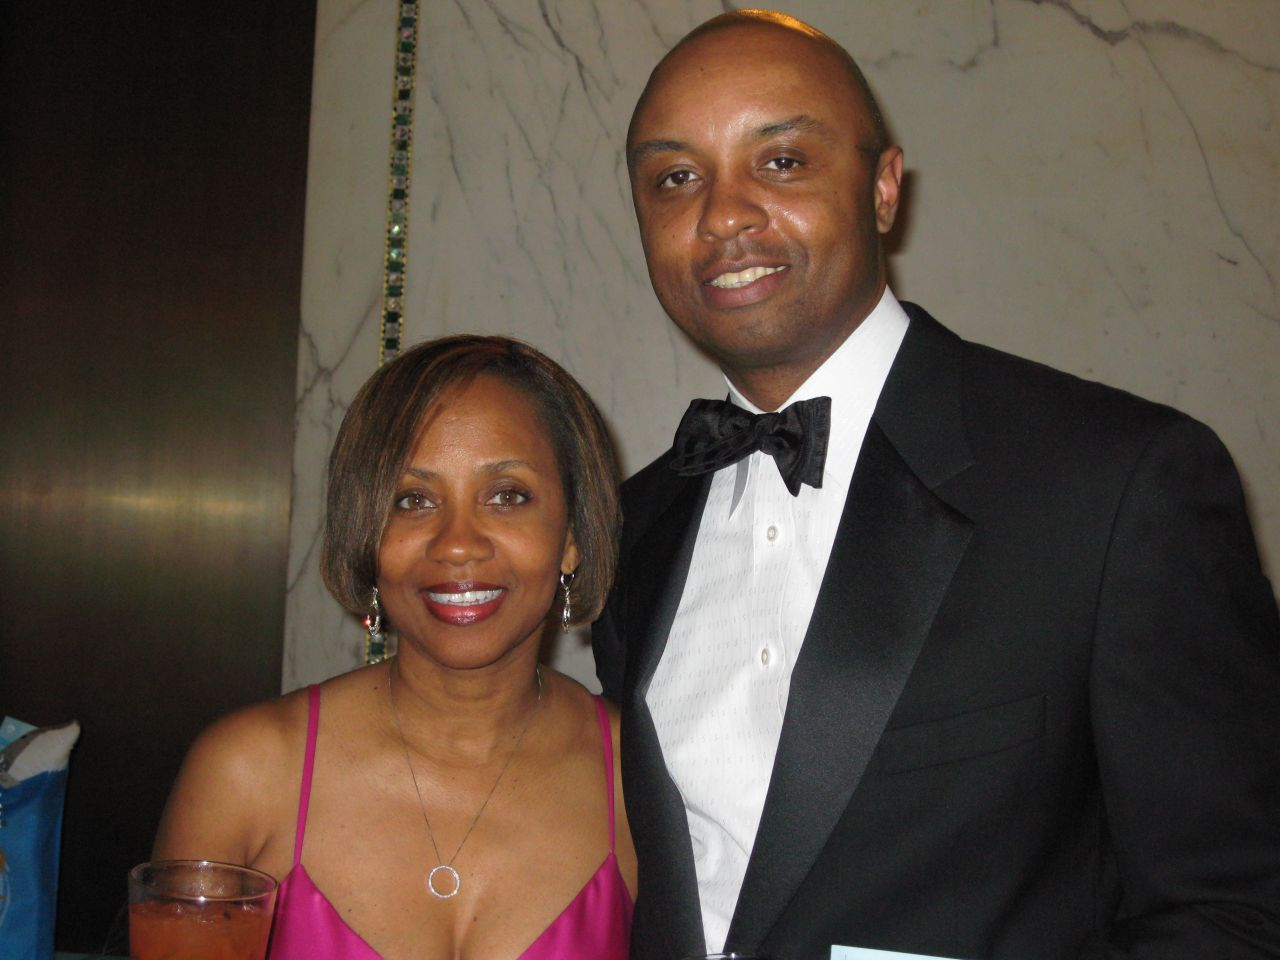 IBF President Vince Cornelius and wife Zina